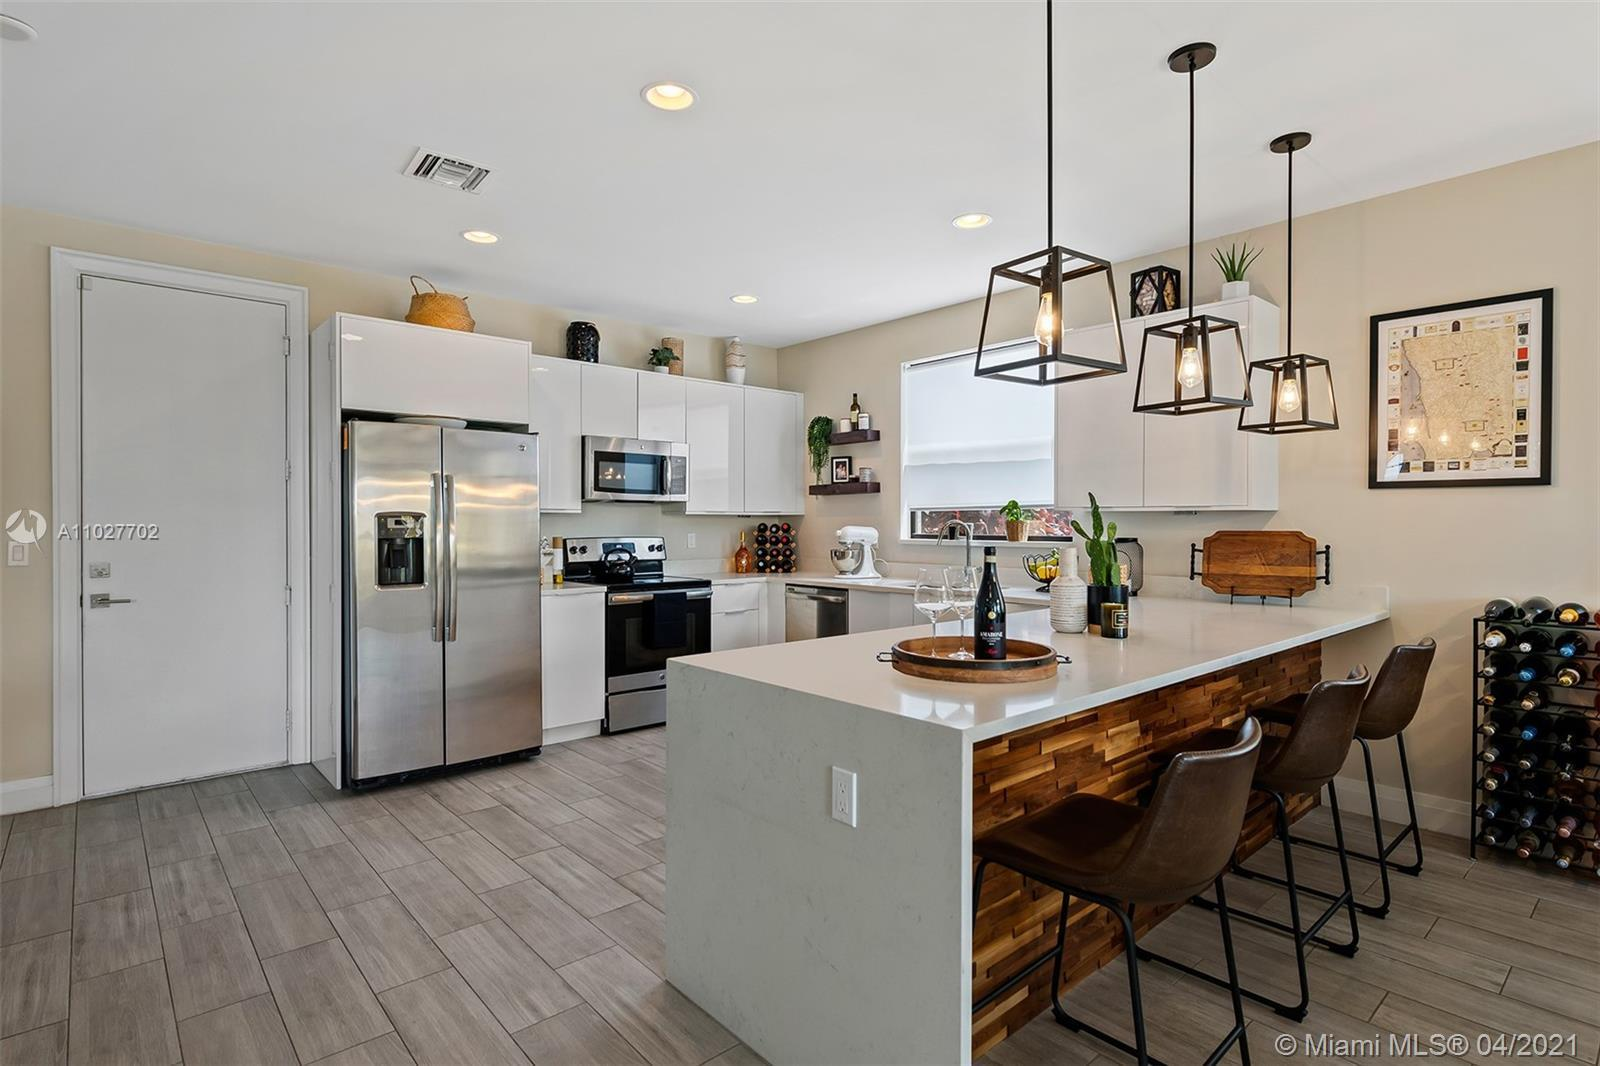 Don't miss this beautiful Modern townhome that is MOVE IN READY! This Gorgeous townhouse features a